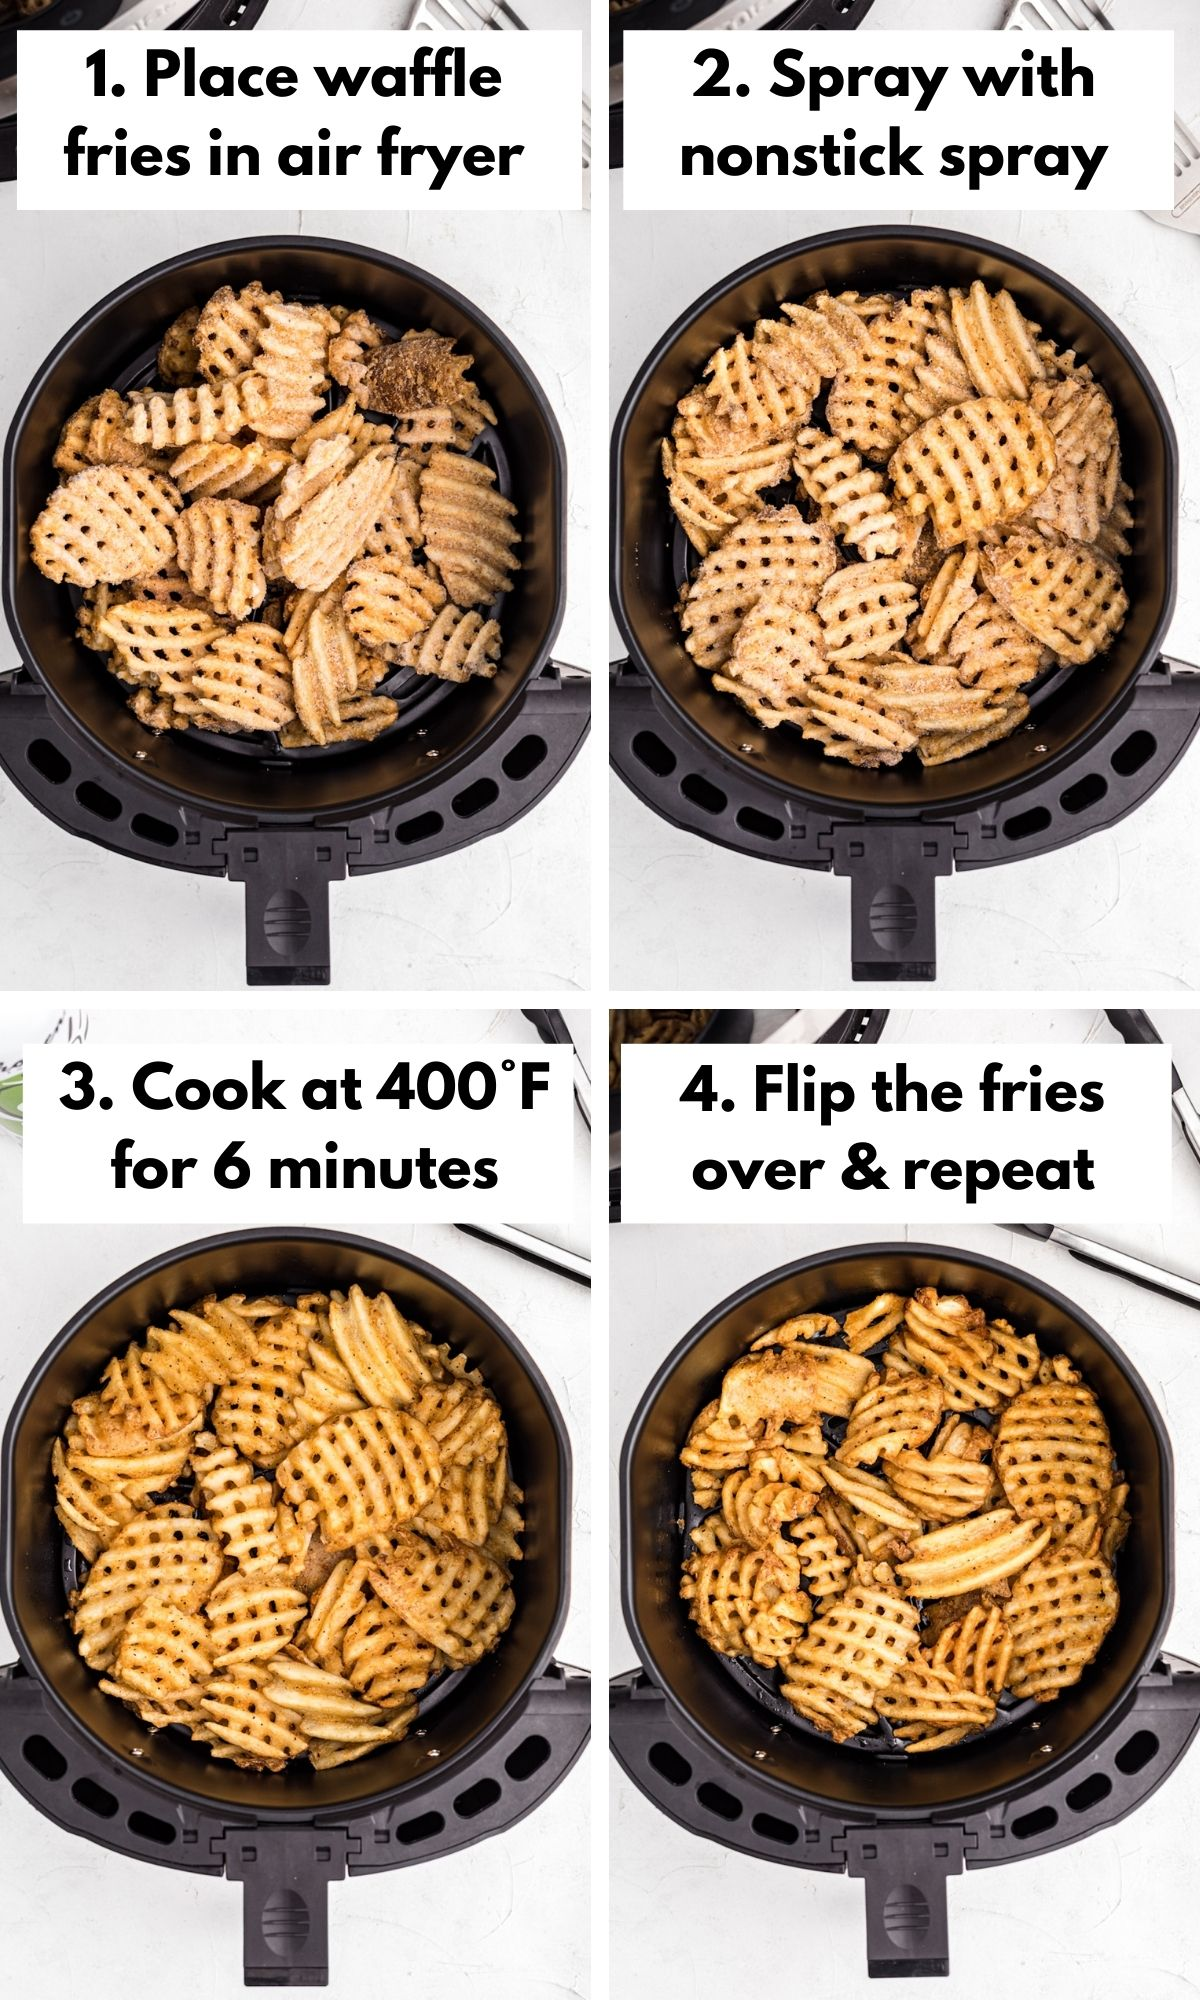 how to cook waffle fries in an air fryer